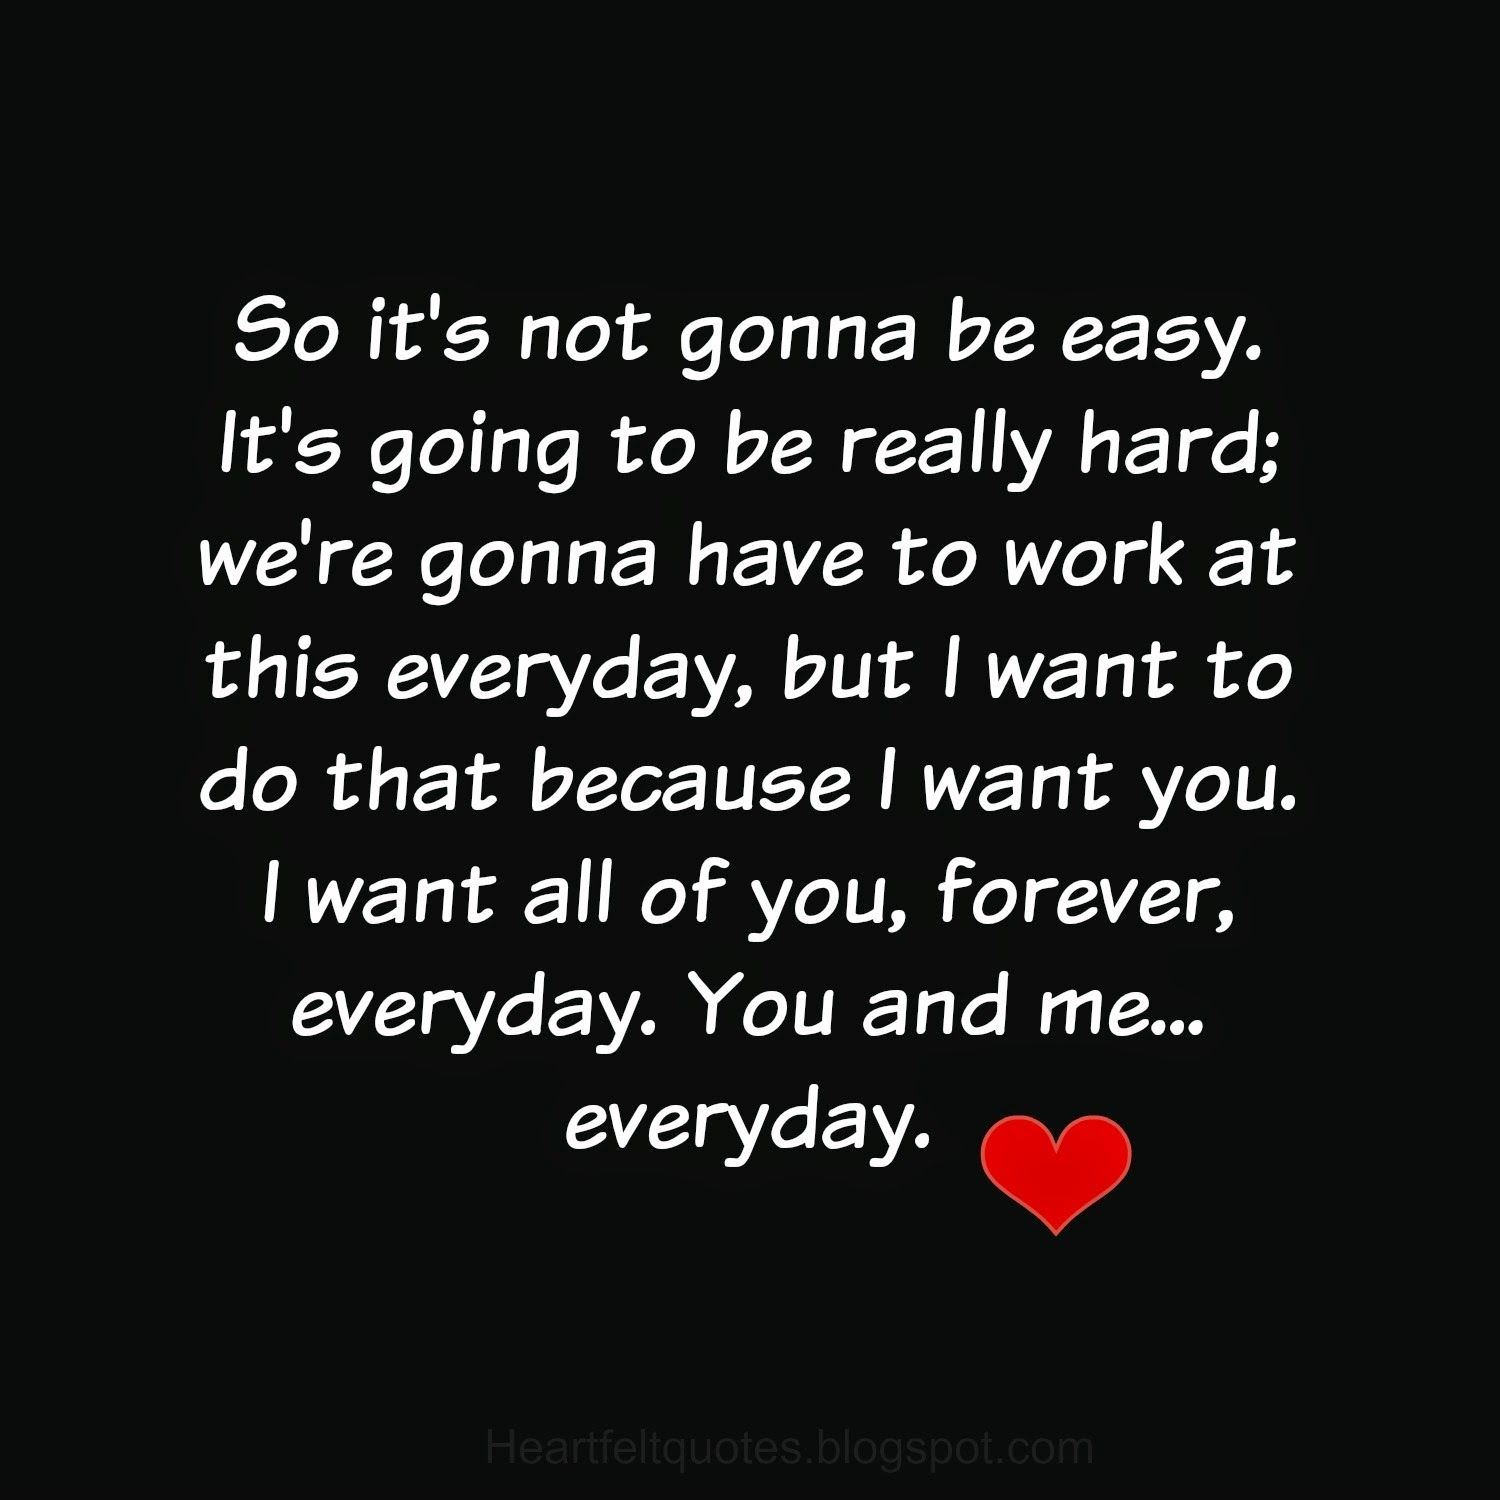 Everyday Love Quotes: I Want All Of You, Forever, Everyday. You And Me